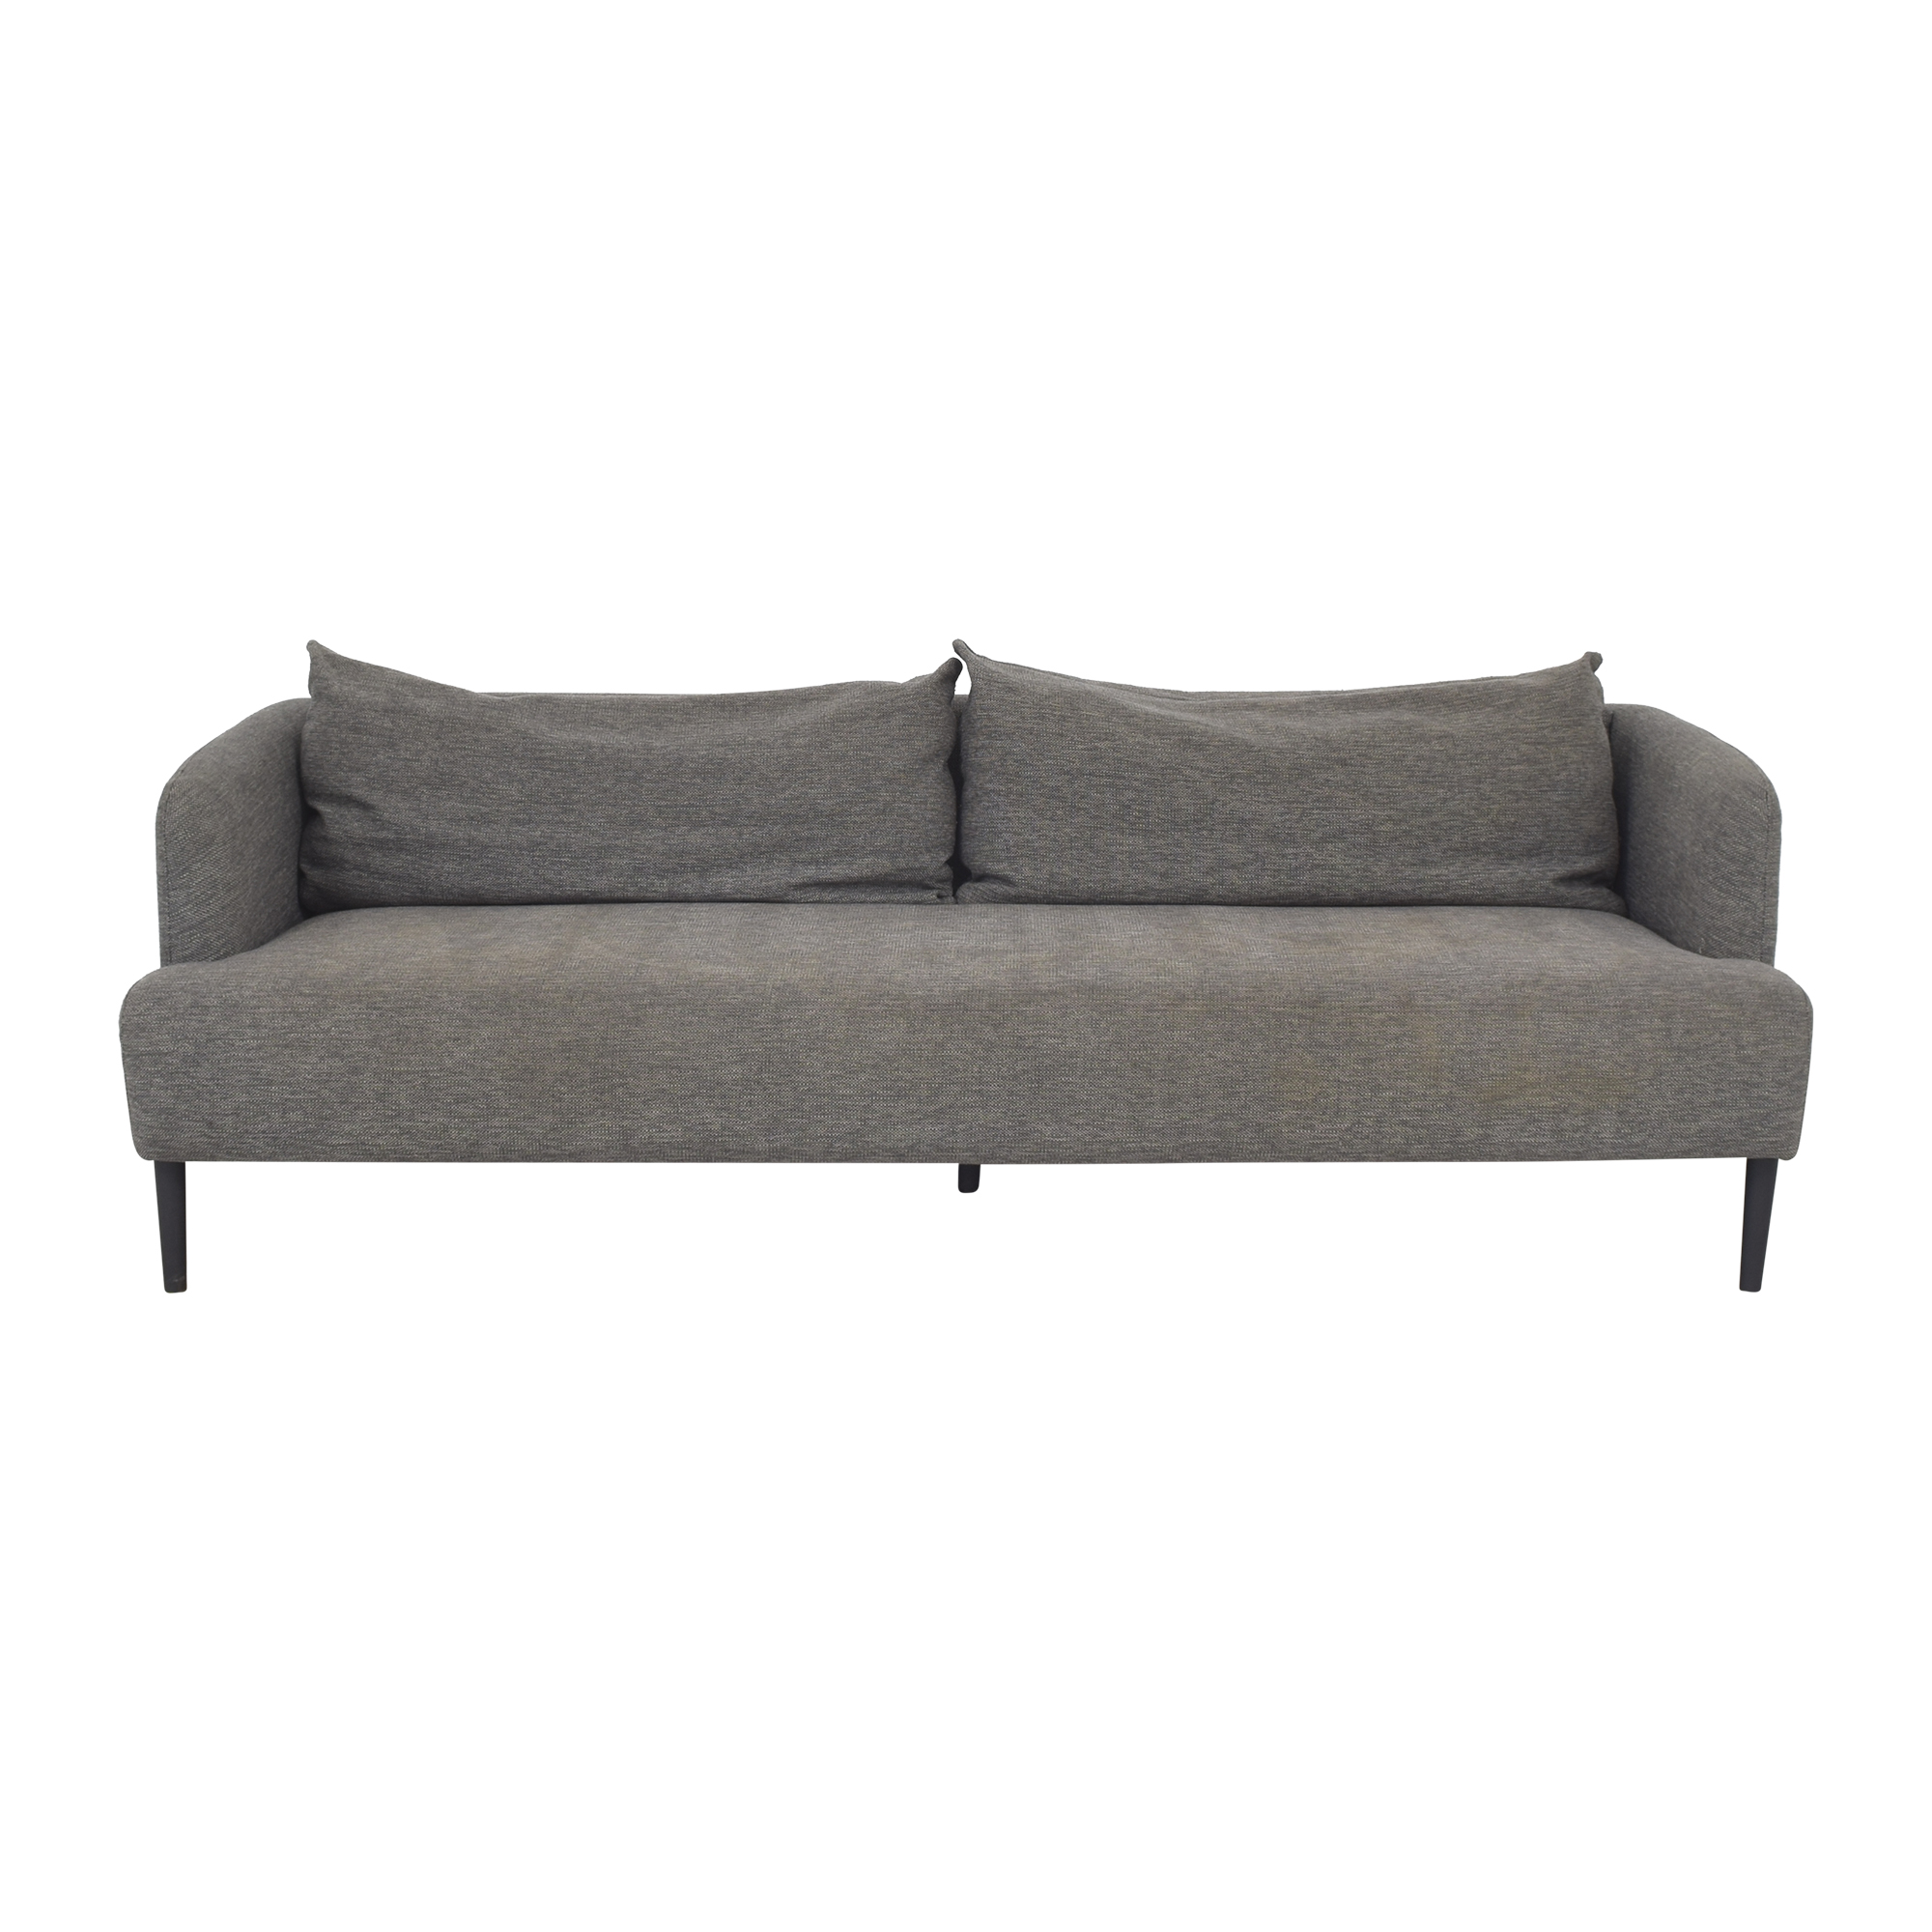 CB2 Ronan Bench Cushion Sofa sale